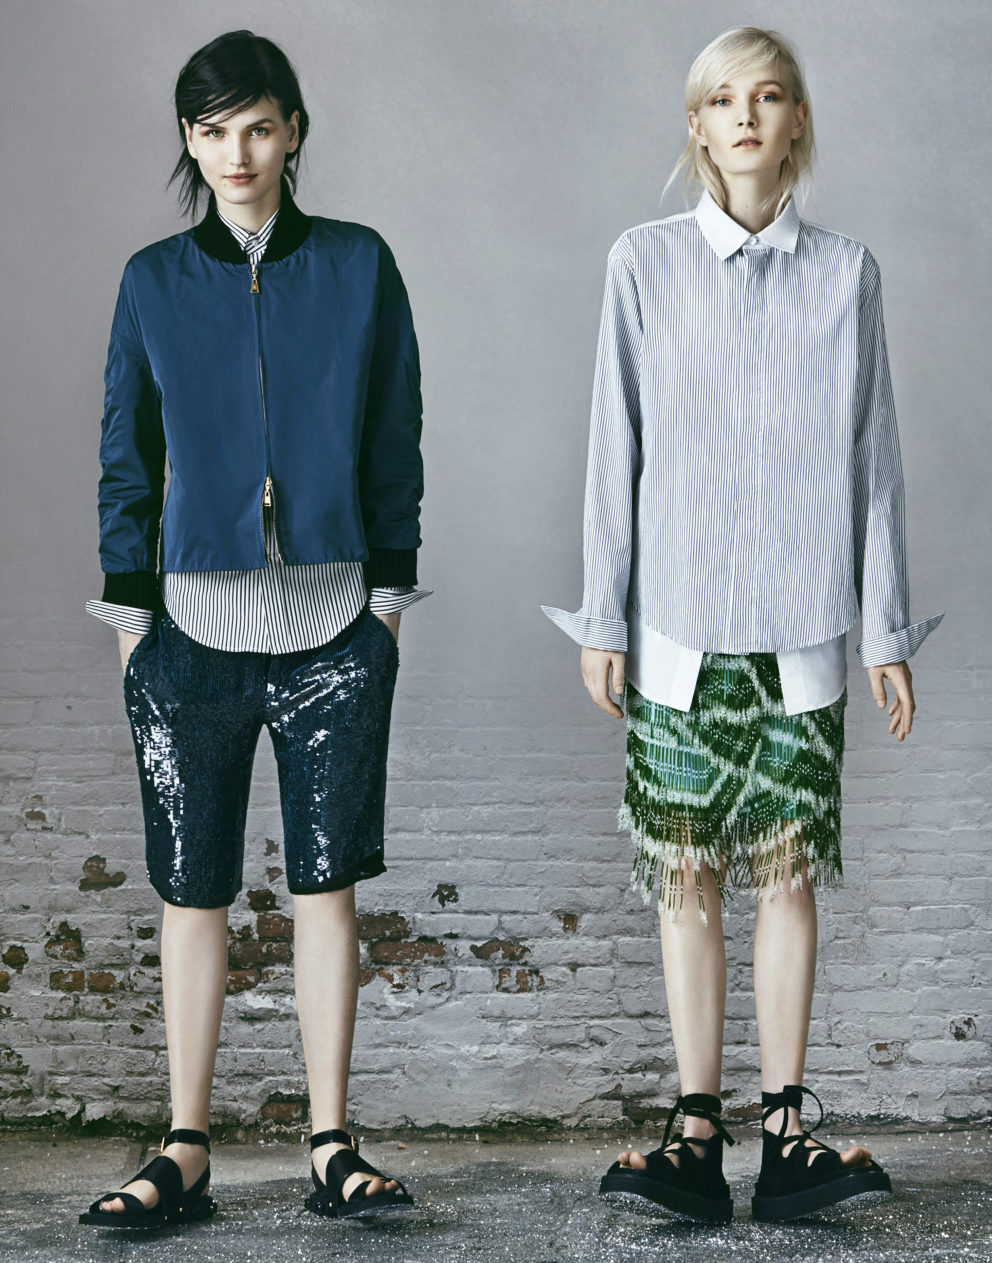 140129 Vogue Sequin Twins Christian Hogstedt 04